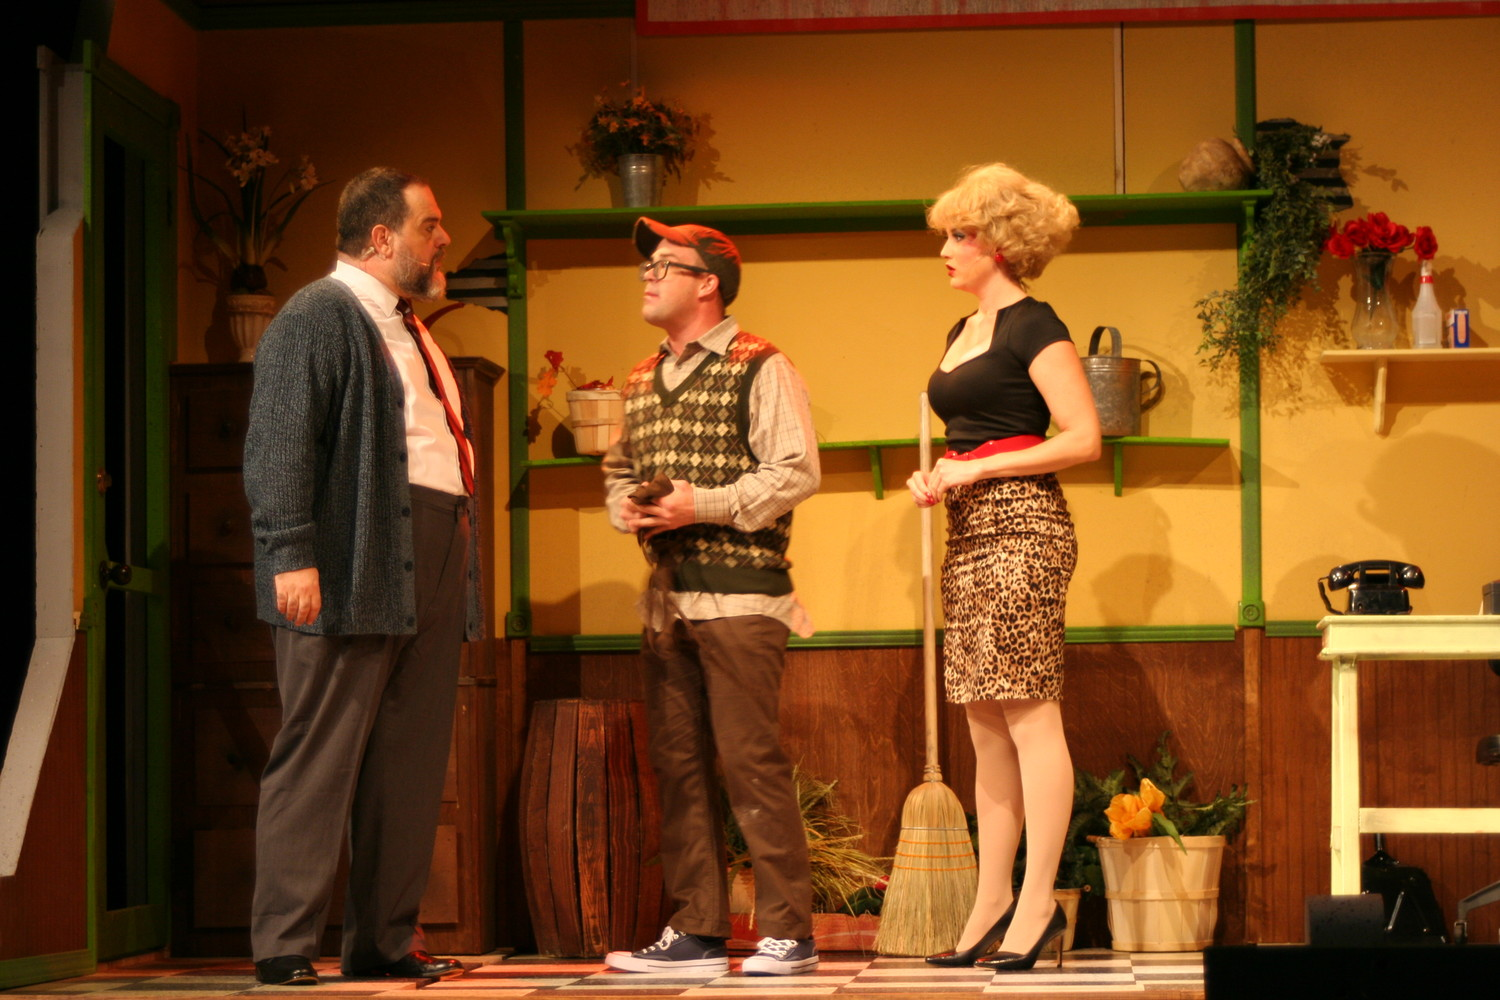 Seymour (center) and Audrey converse with their boss, Mr. Mushnik, at the flower shop